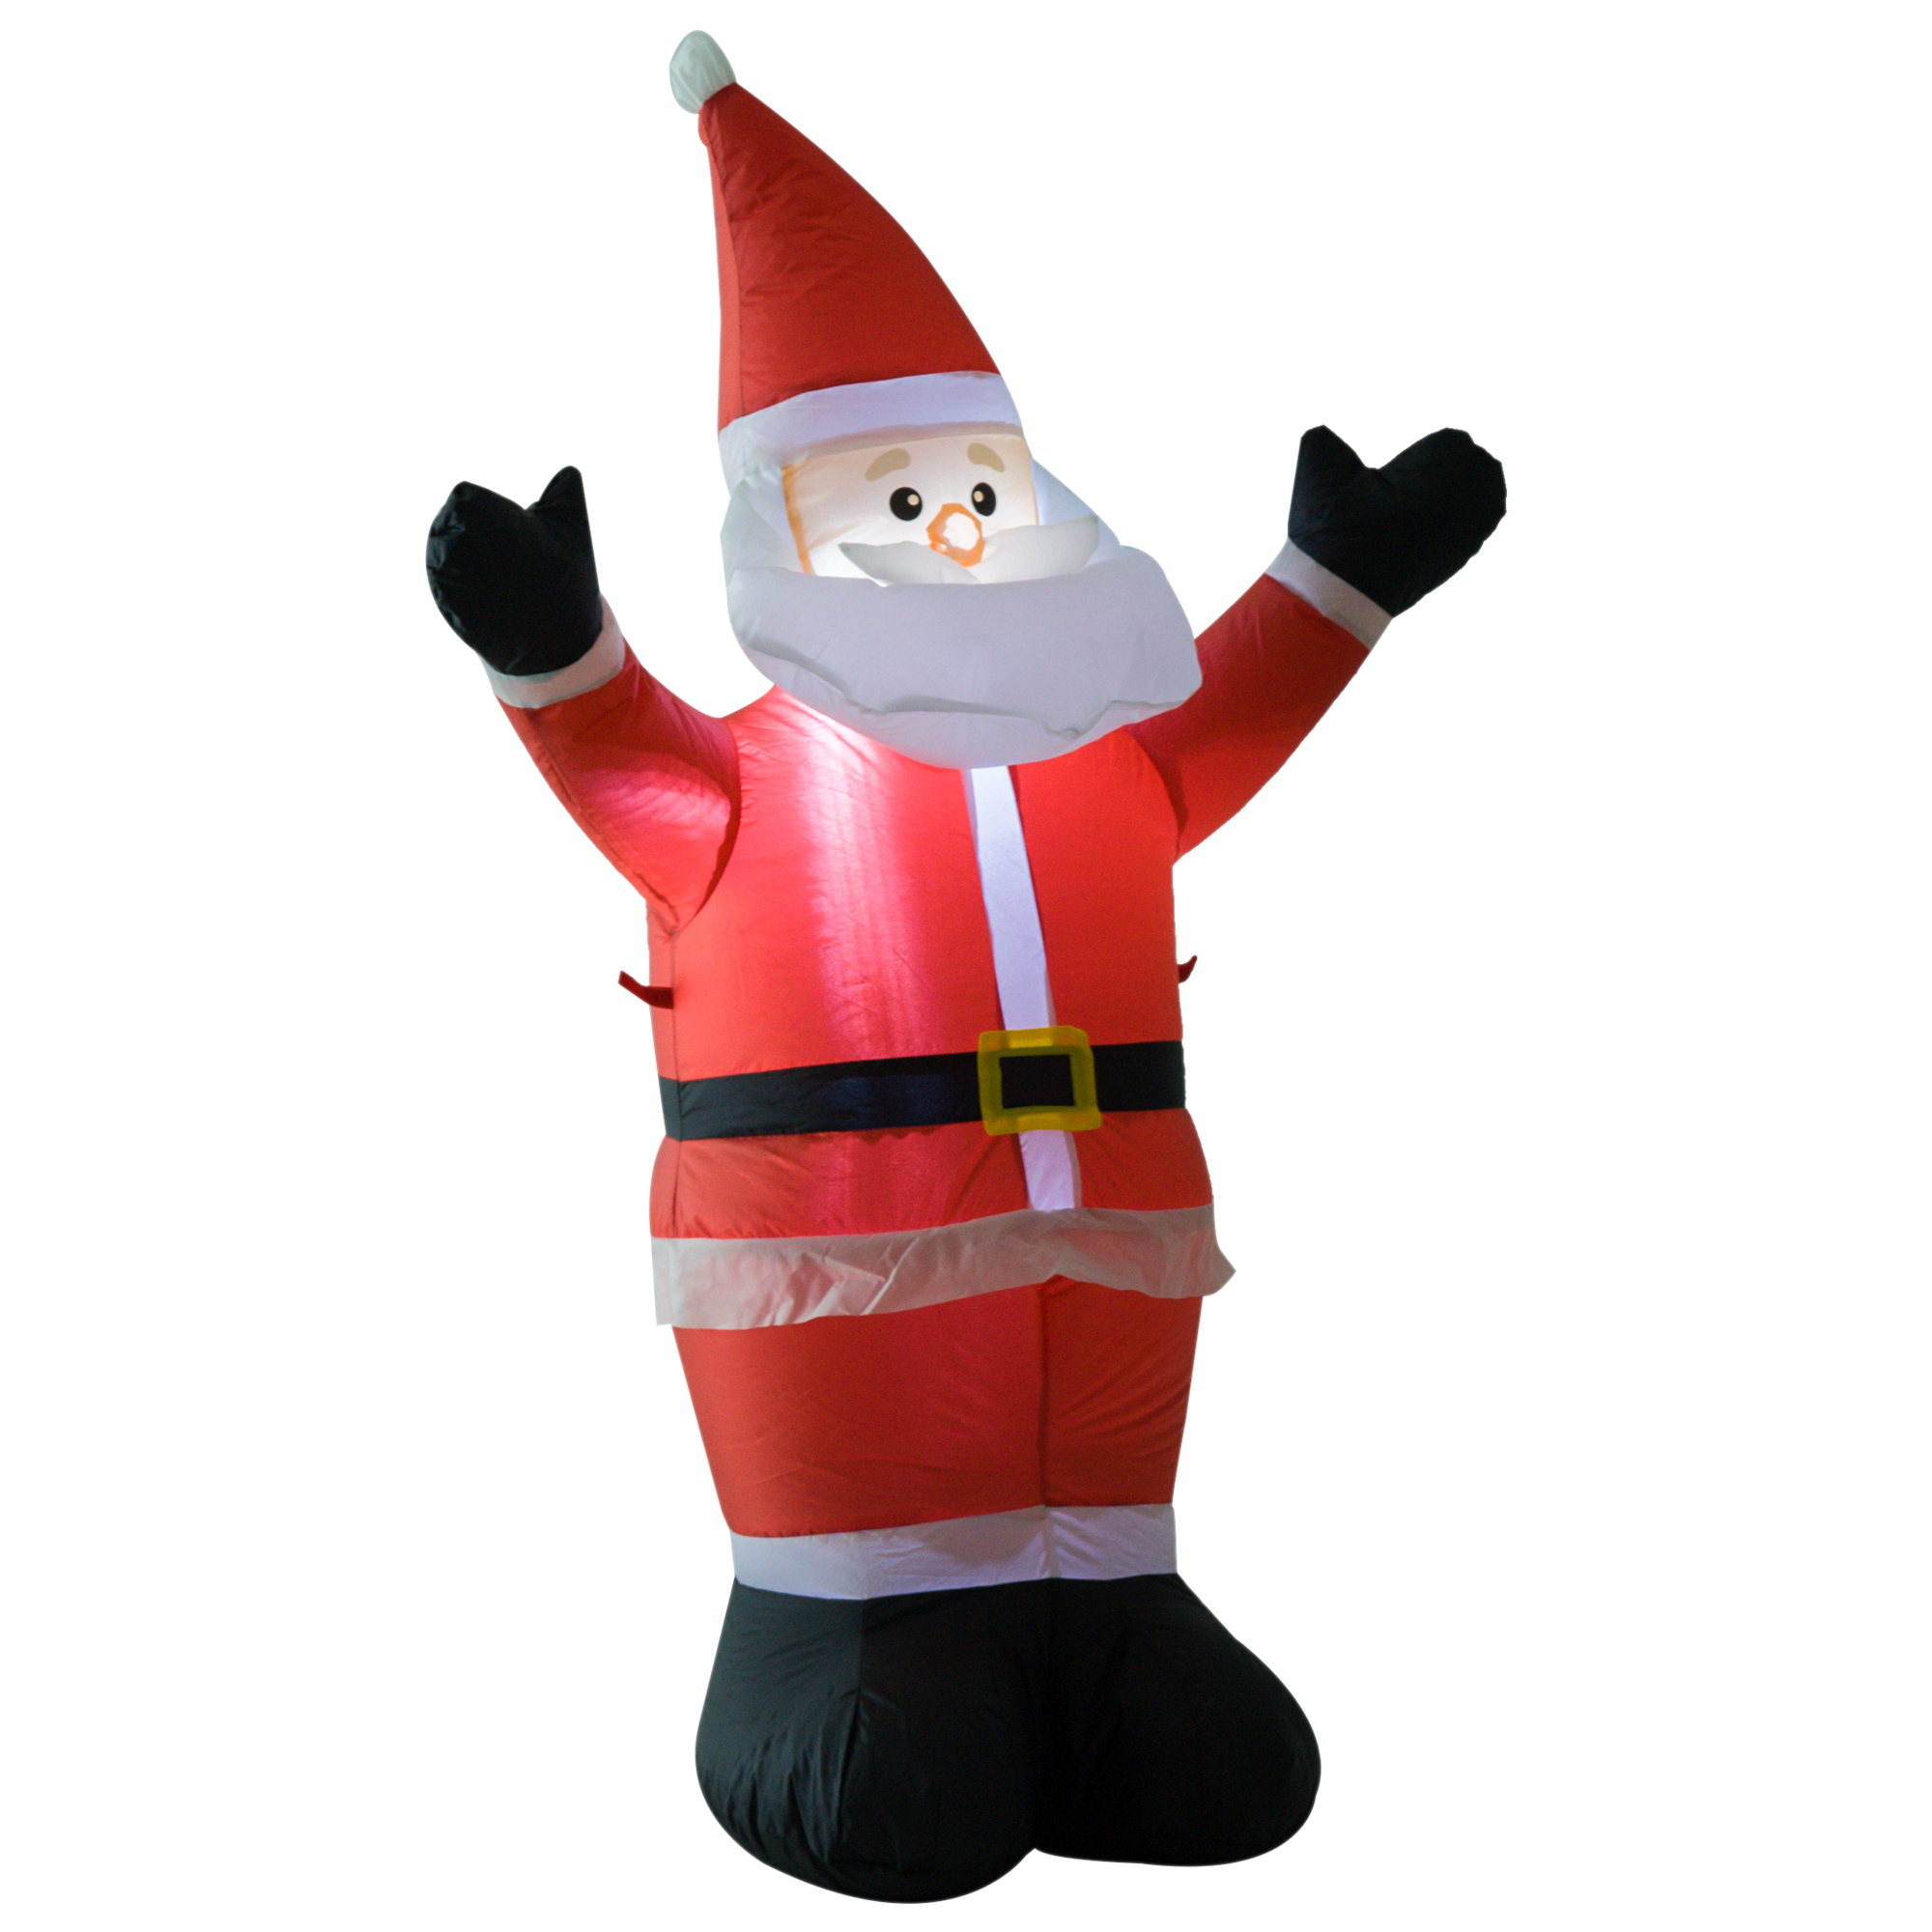 Image of £21.99 HOMCOM Inflatable 1.2m Santa Claus / Christmas Xmas Decoration 3 LED Holiday Air Blown Yard Outdoor Décor Tall Airblown Welcoming 844-159 5056029802748